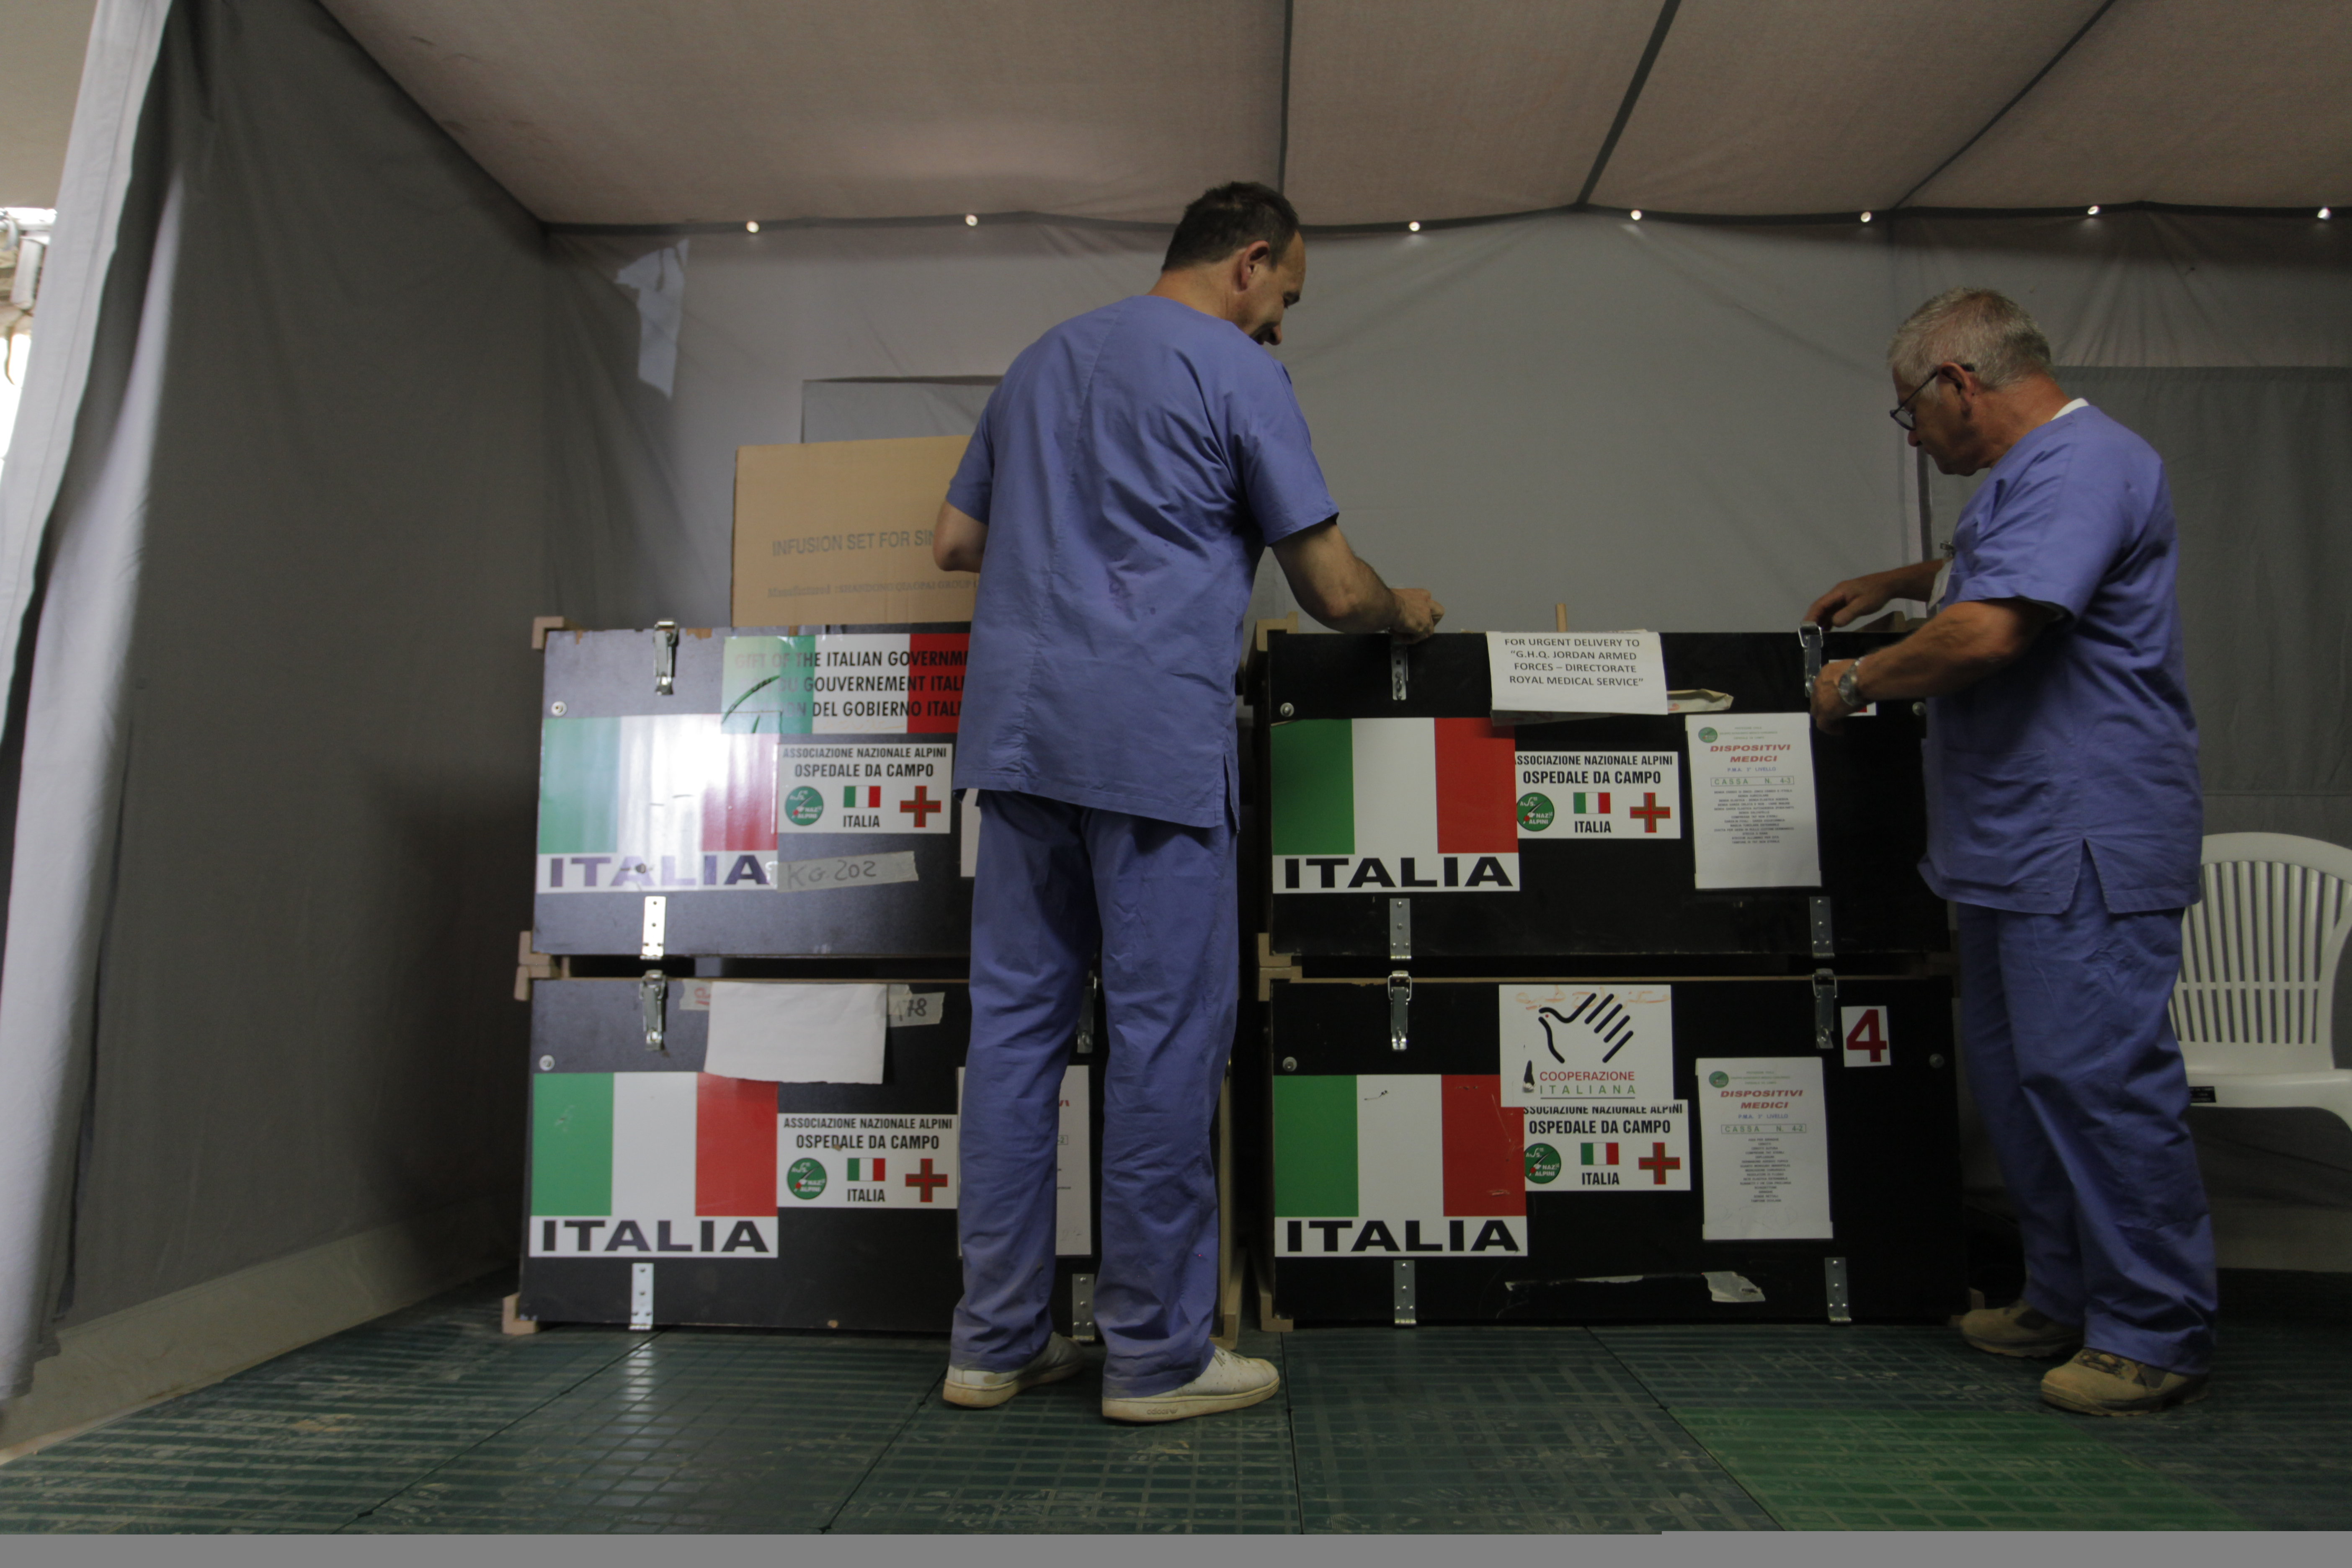 The Italian Medical crew opens the medical supplies boxes at the Italian Field Hospital for Syrian refugees, which was established in al Mafraq city, Jordan, July 10, 2012.